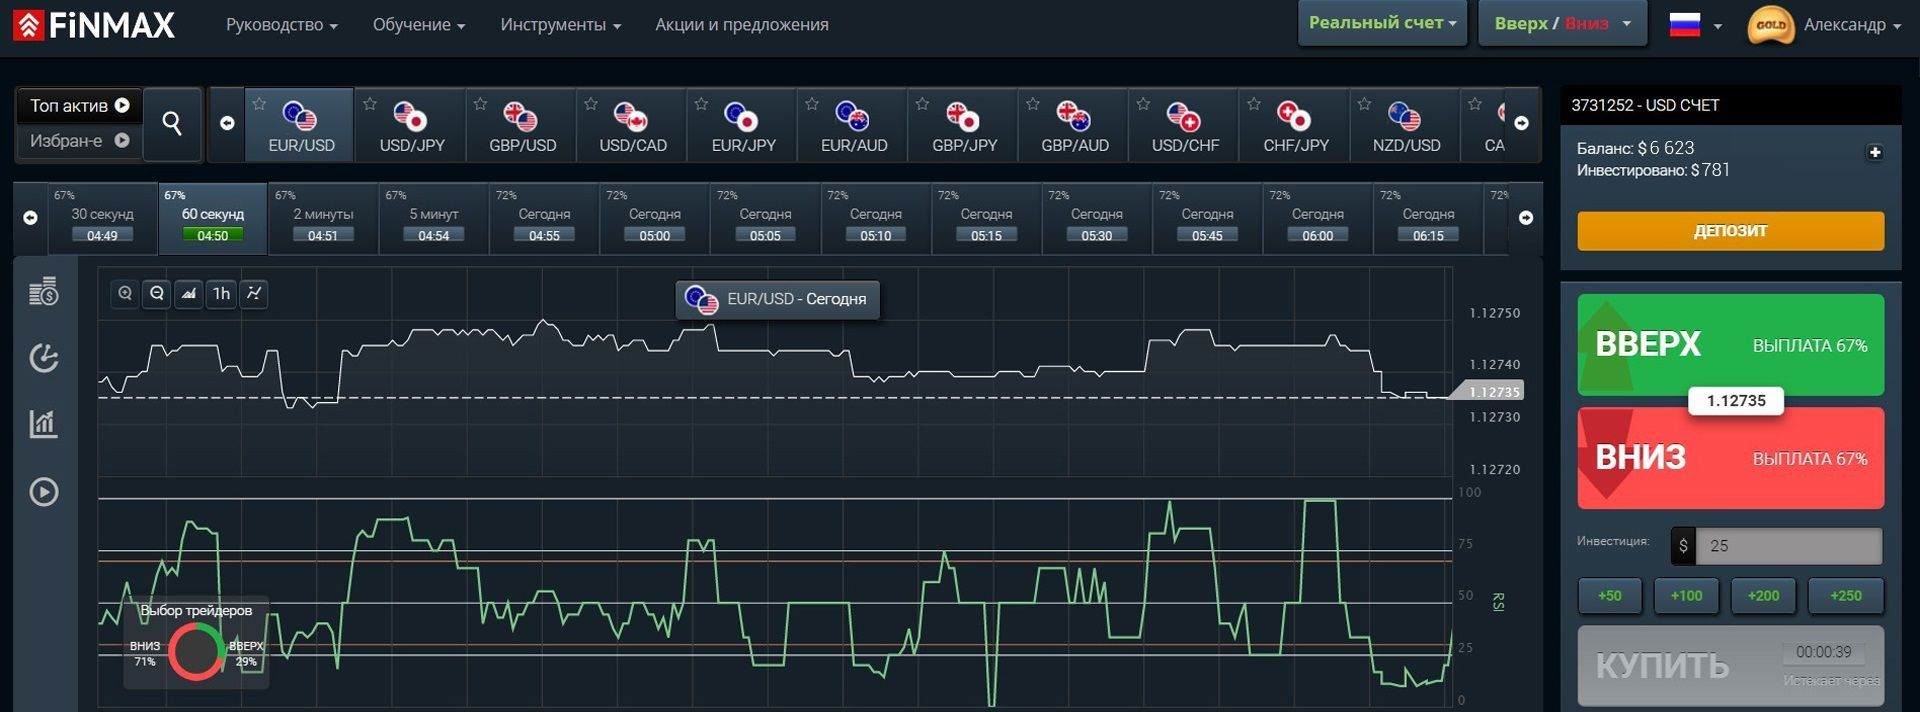 RSI indicator is presented in most modern trading platforms